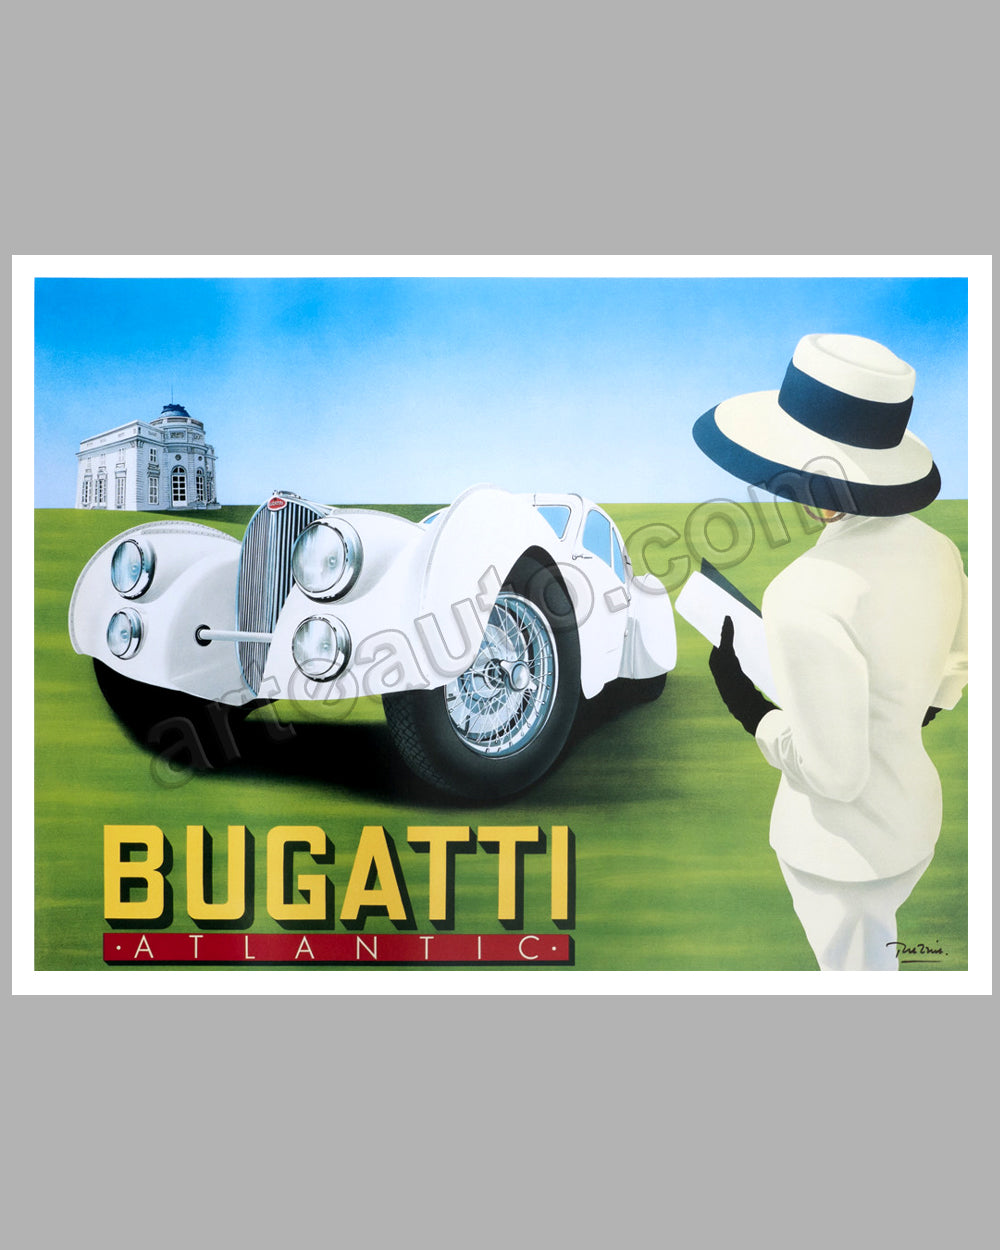 "Bugatti Atlantic poster by Razzia<br><span style=""color: #ff0000;"">TEMPORARILY OUT OF STOCK</span>"